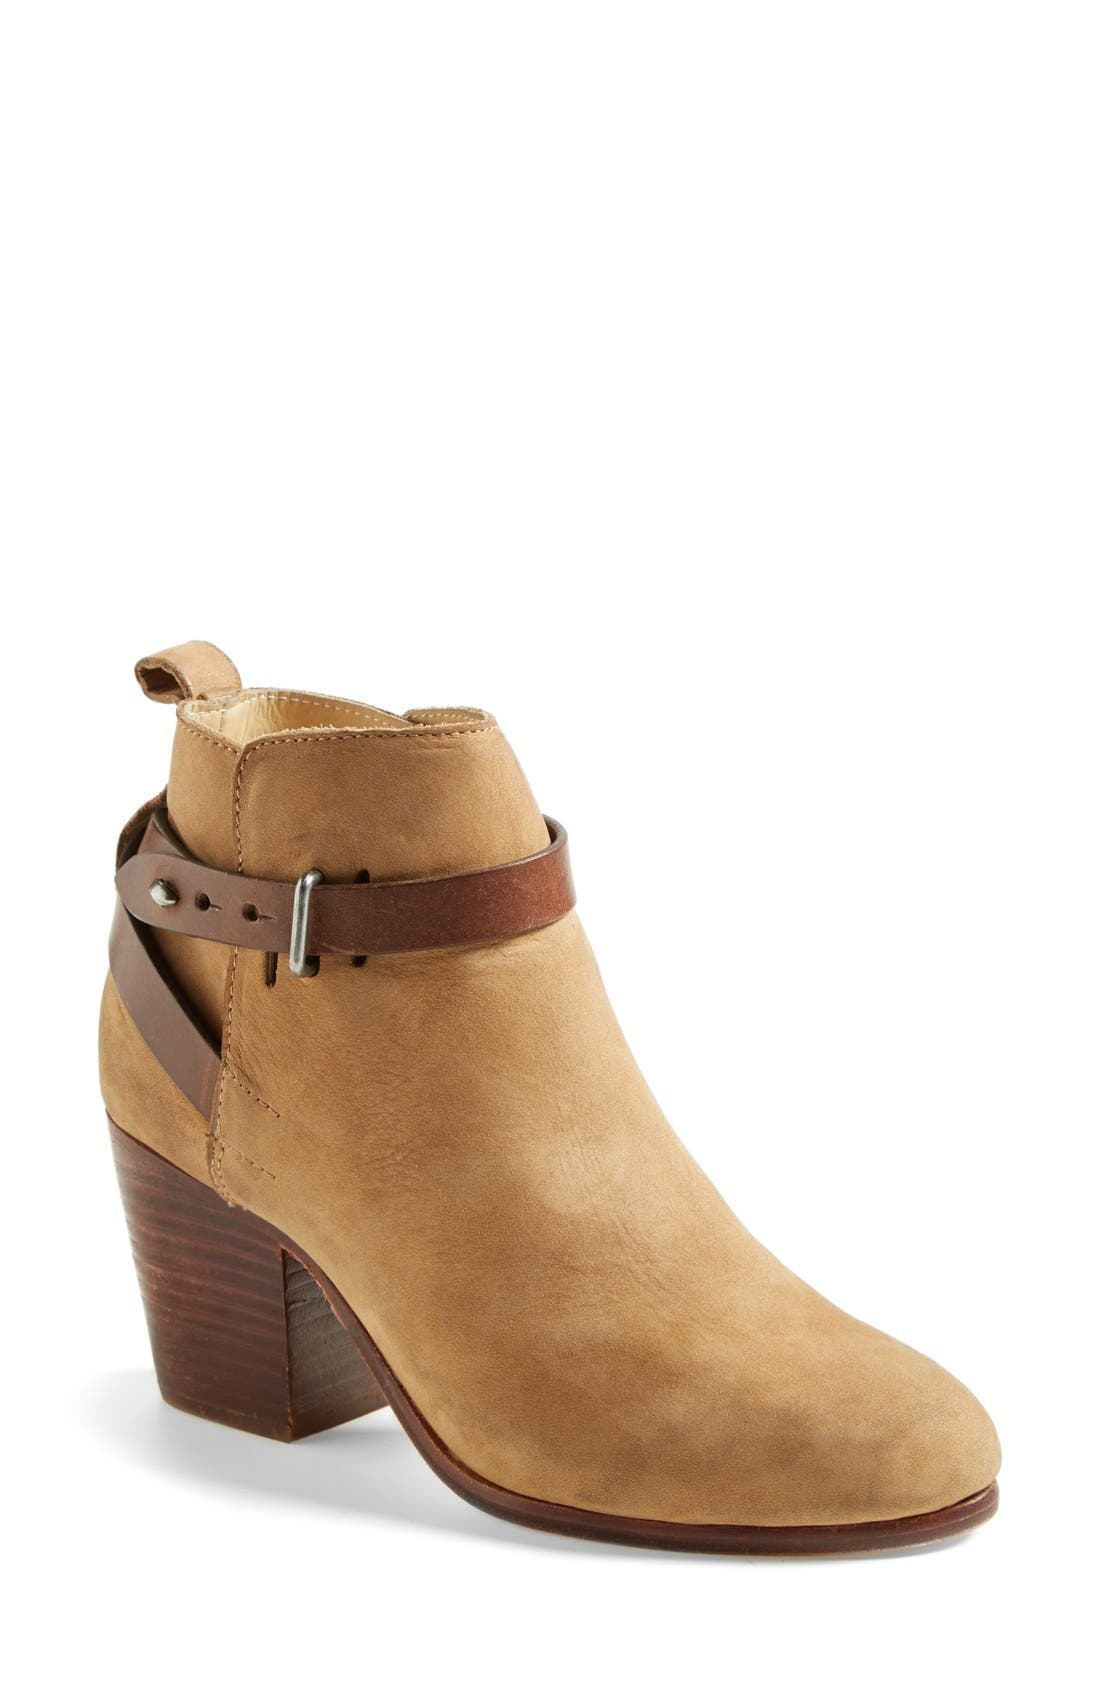 Main Image - rag & bone 'Dalton' Boot (Women)